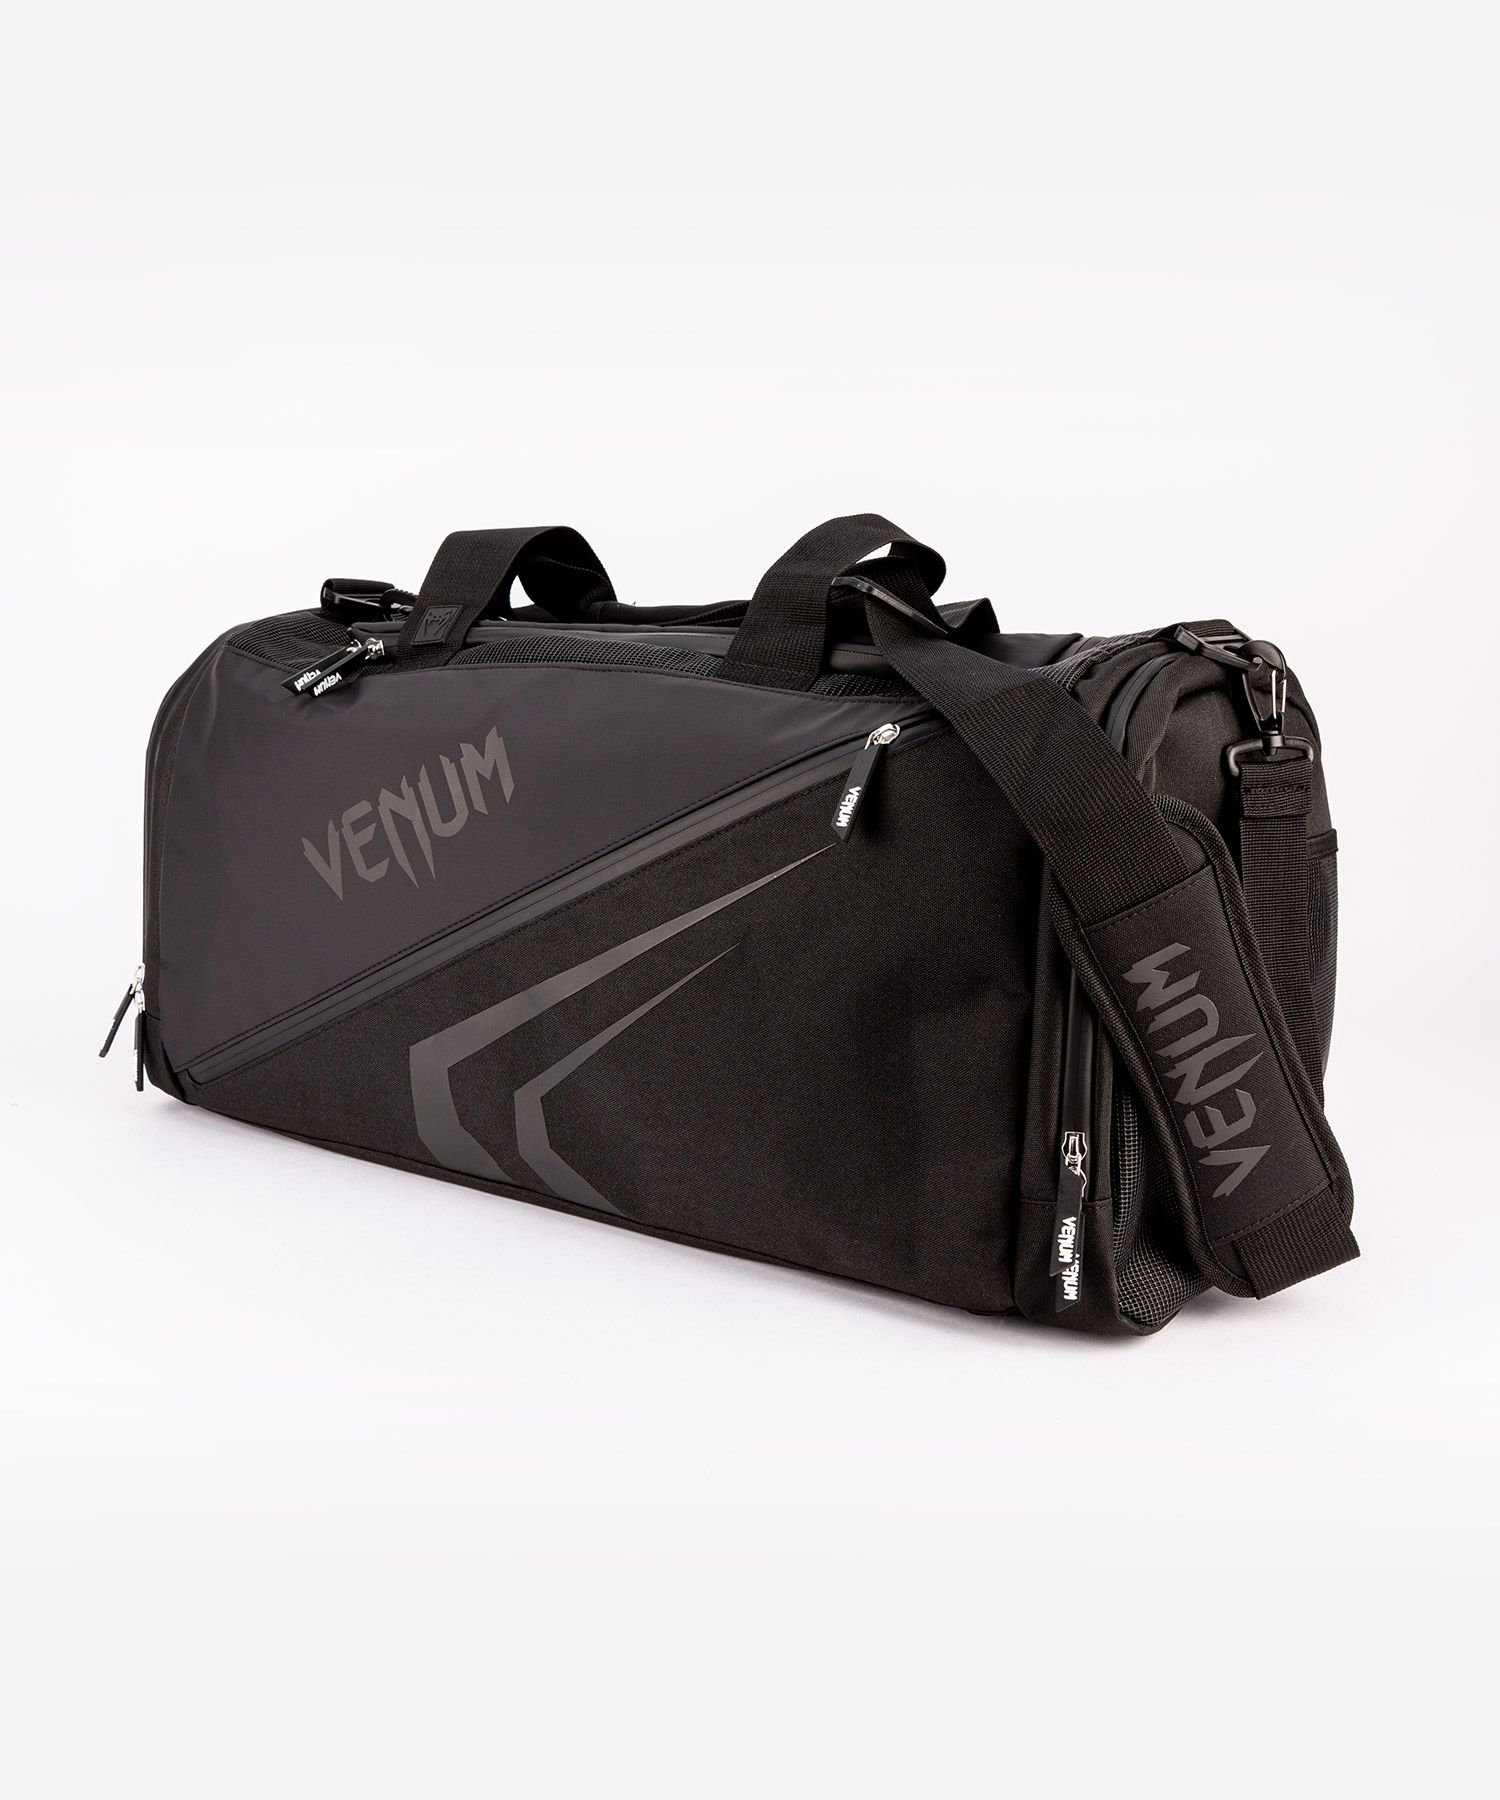 Venum Trainer Lite Evo Sports Bags  - Black/Black